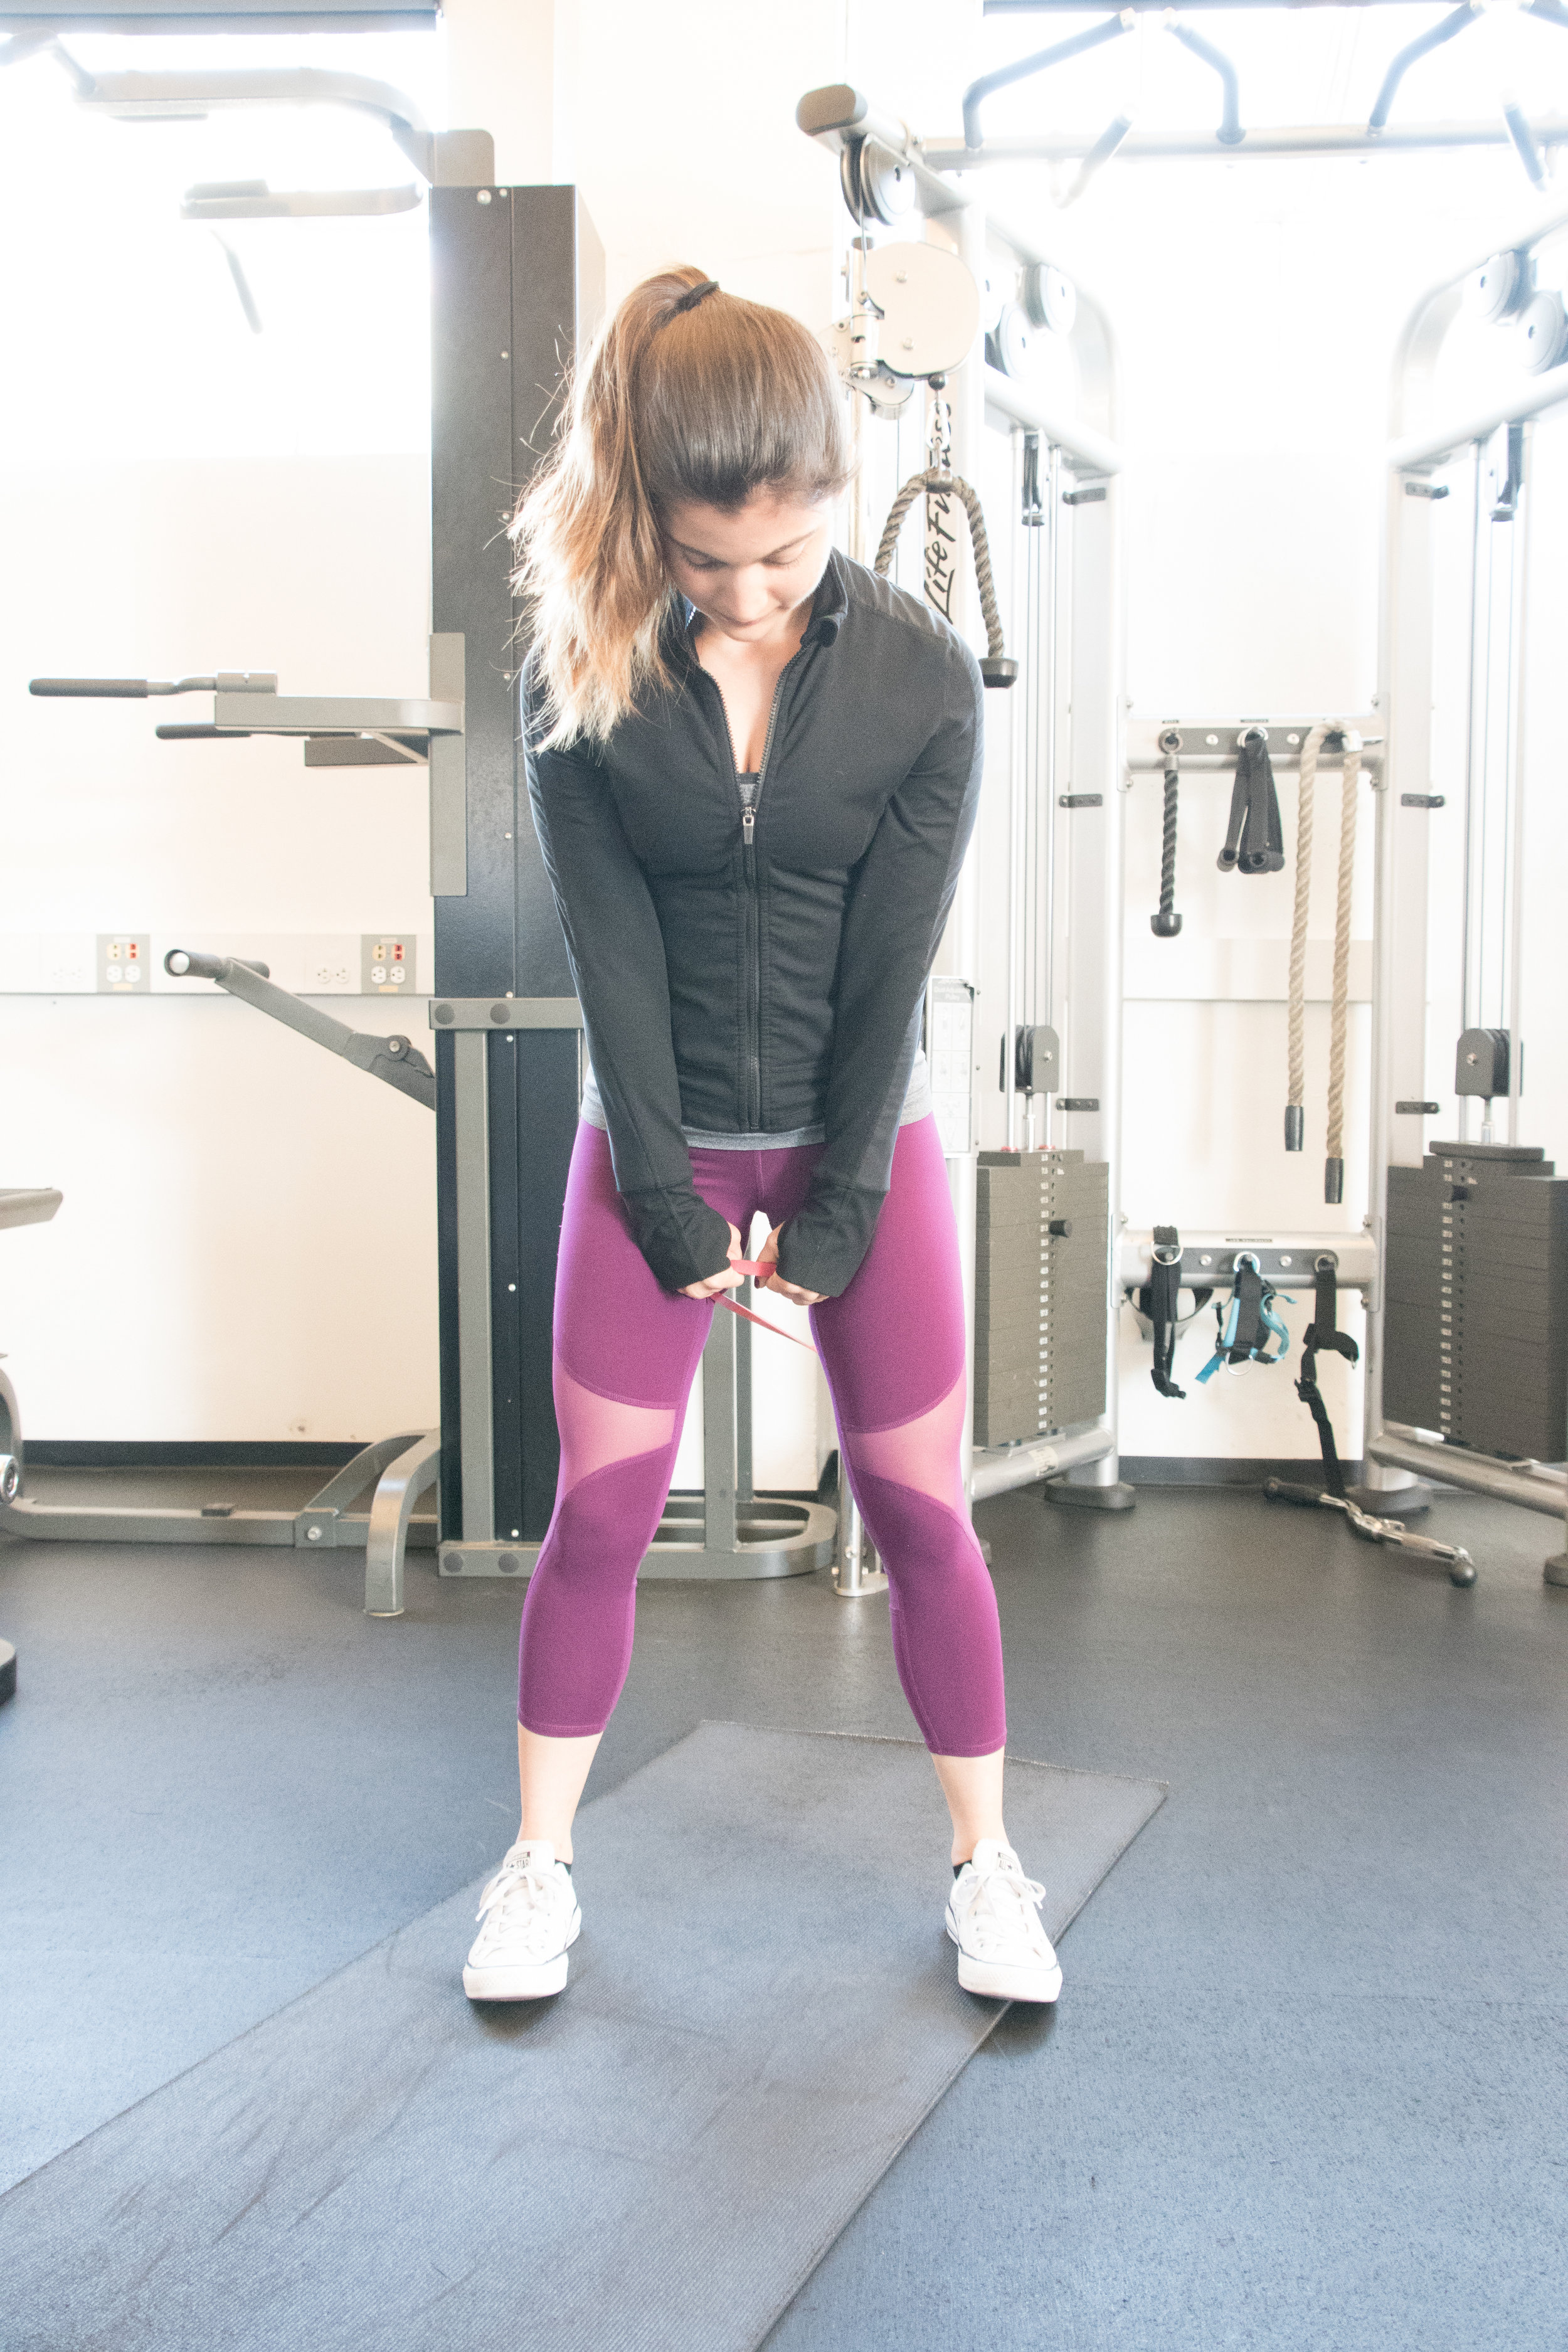 hip thrusters warm-up hamstrings personal trainer